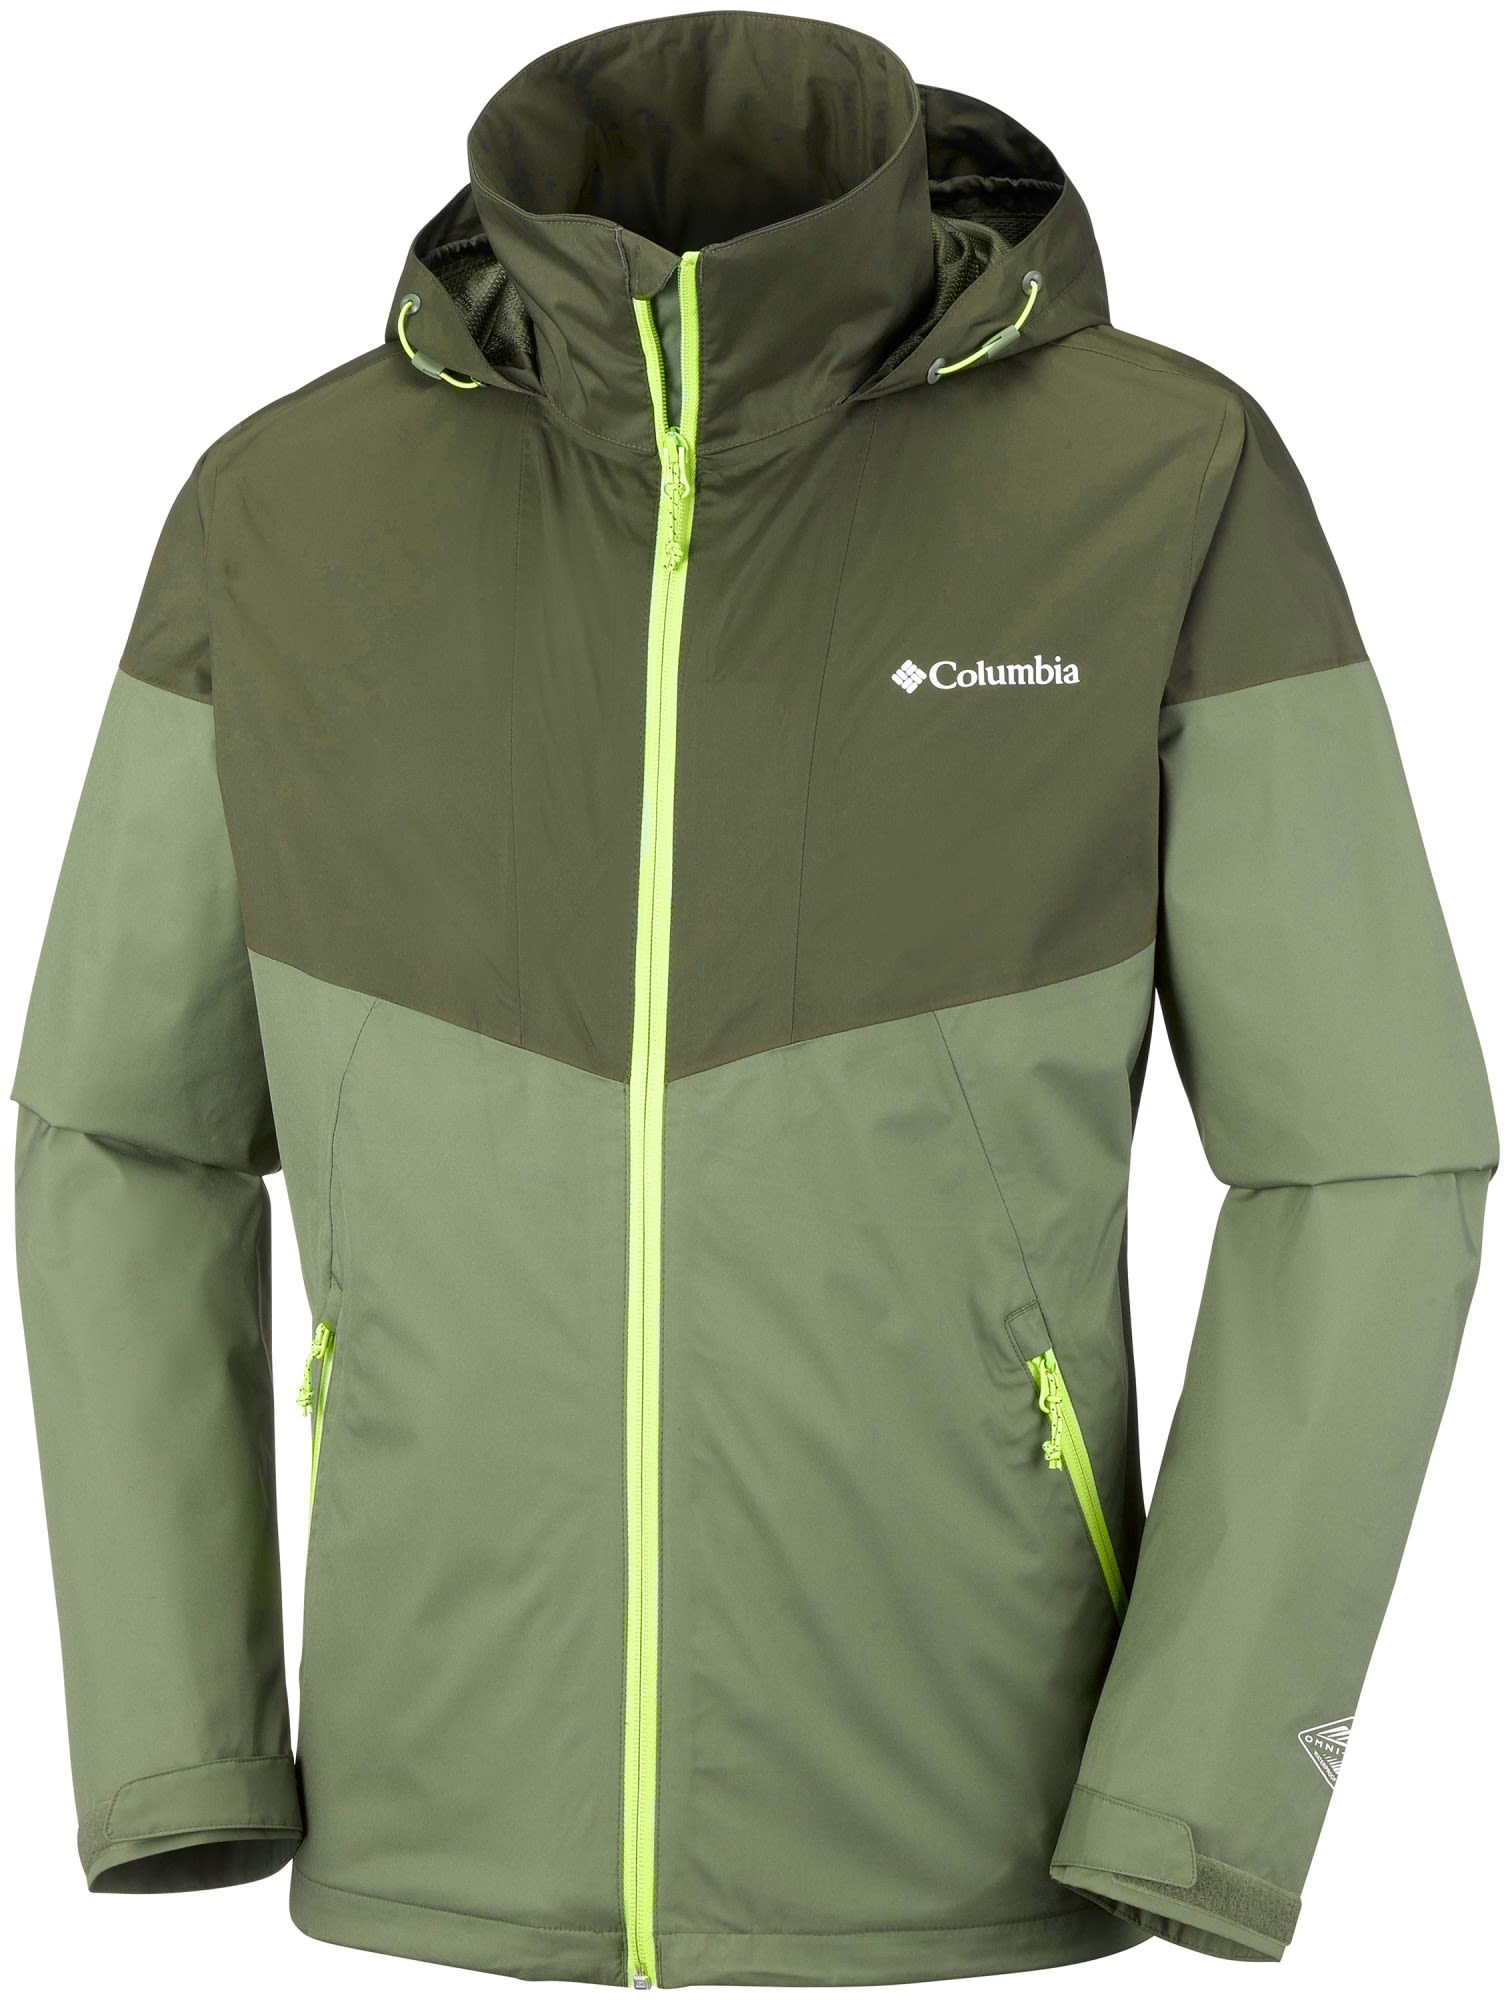 Columbia Inner Limits Jacket Colorblock, Male Freizeitjacke, M